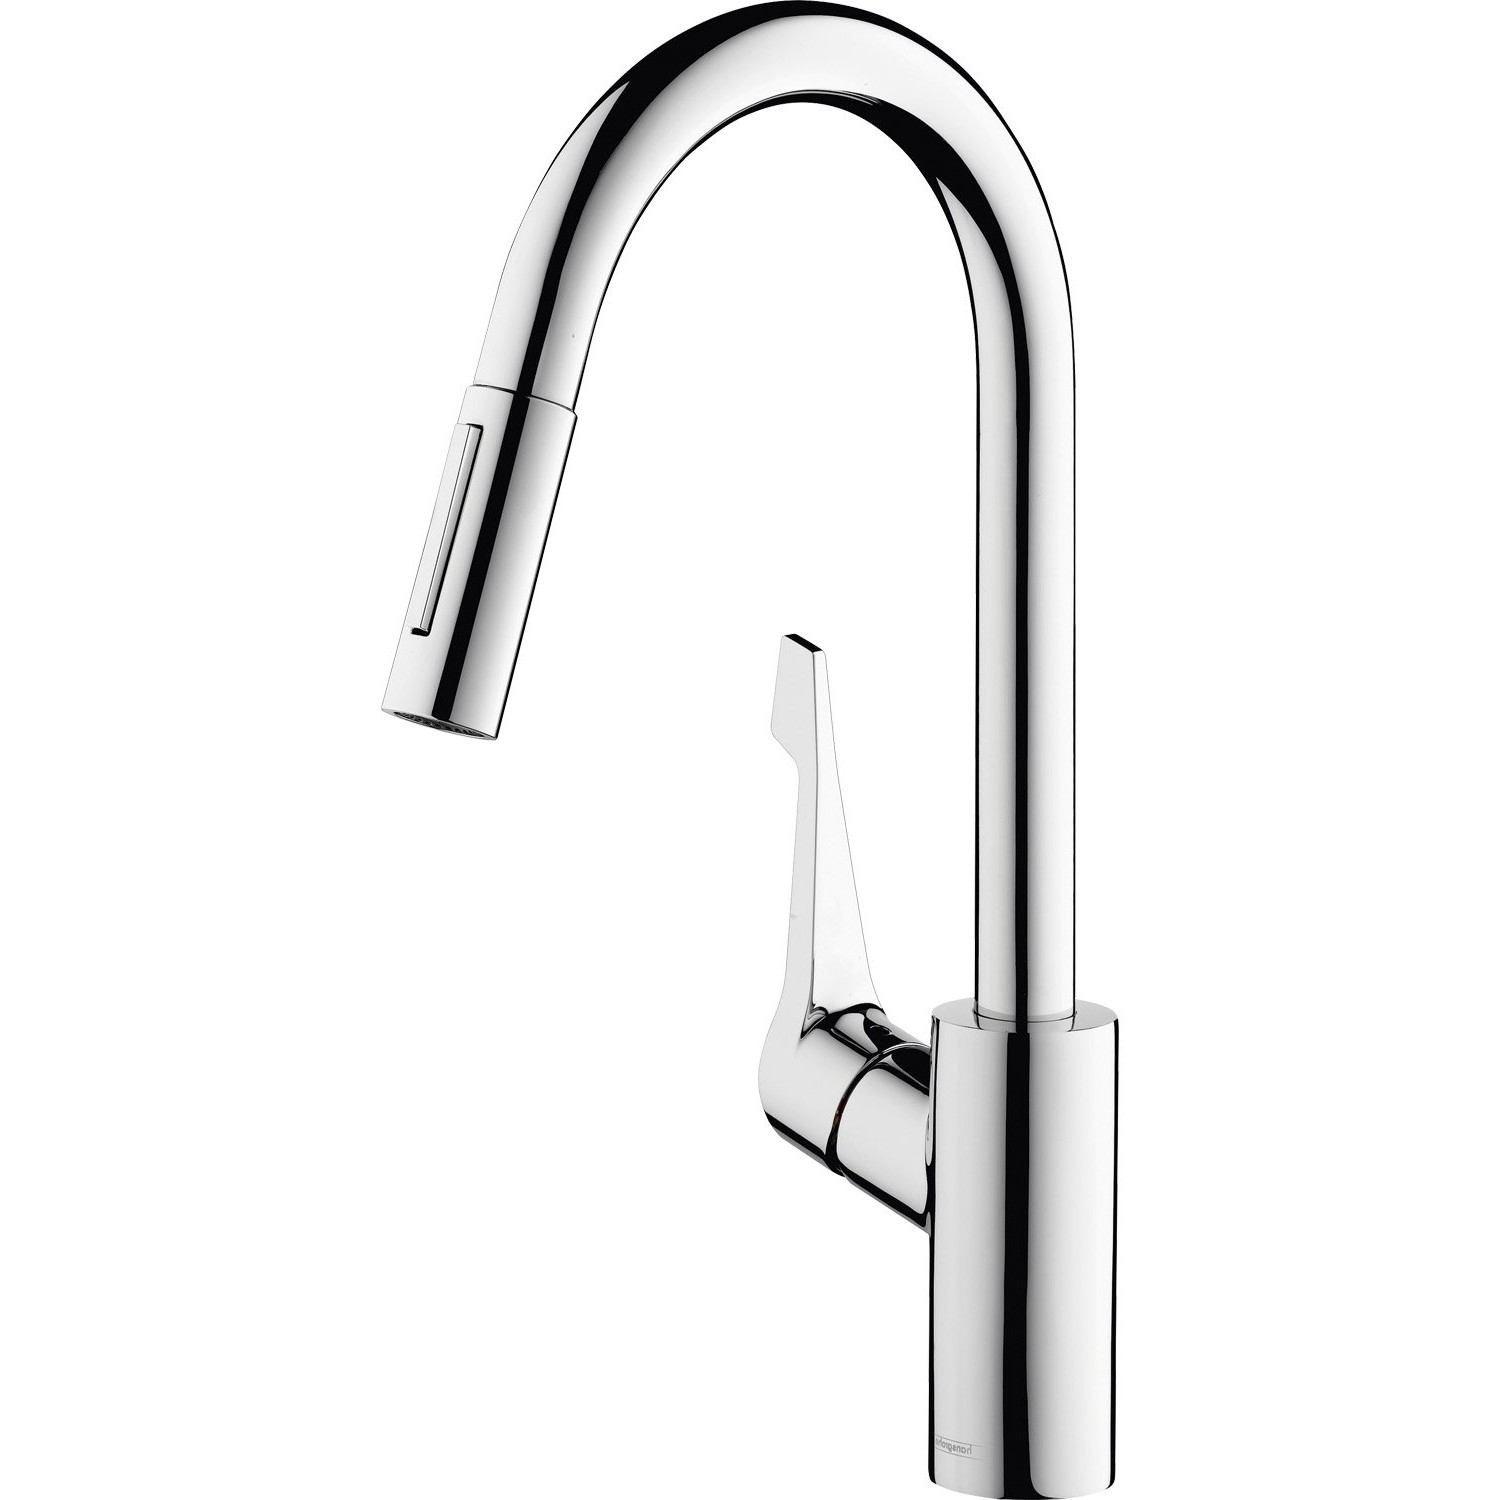 Robinet Grohe Cuisine Demontage